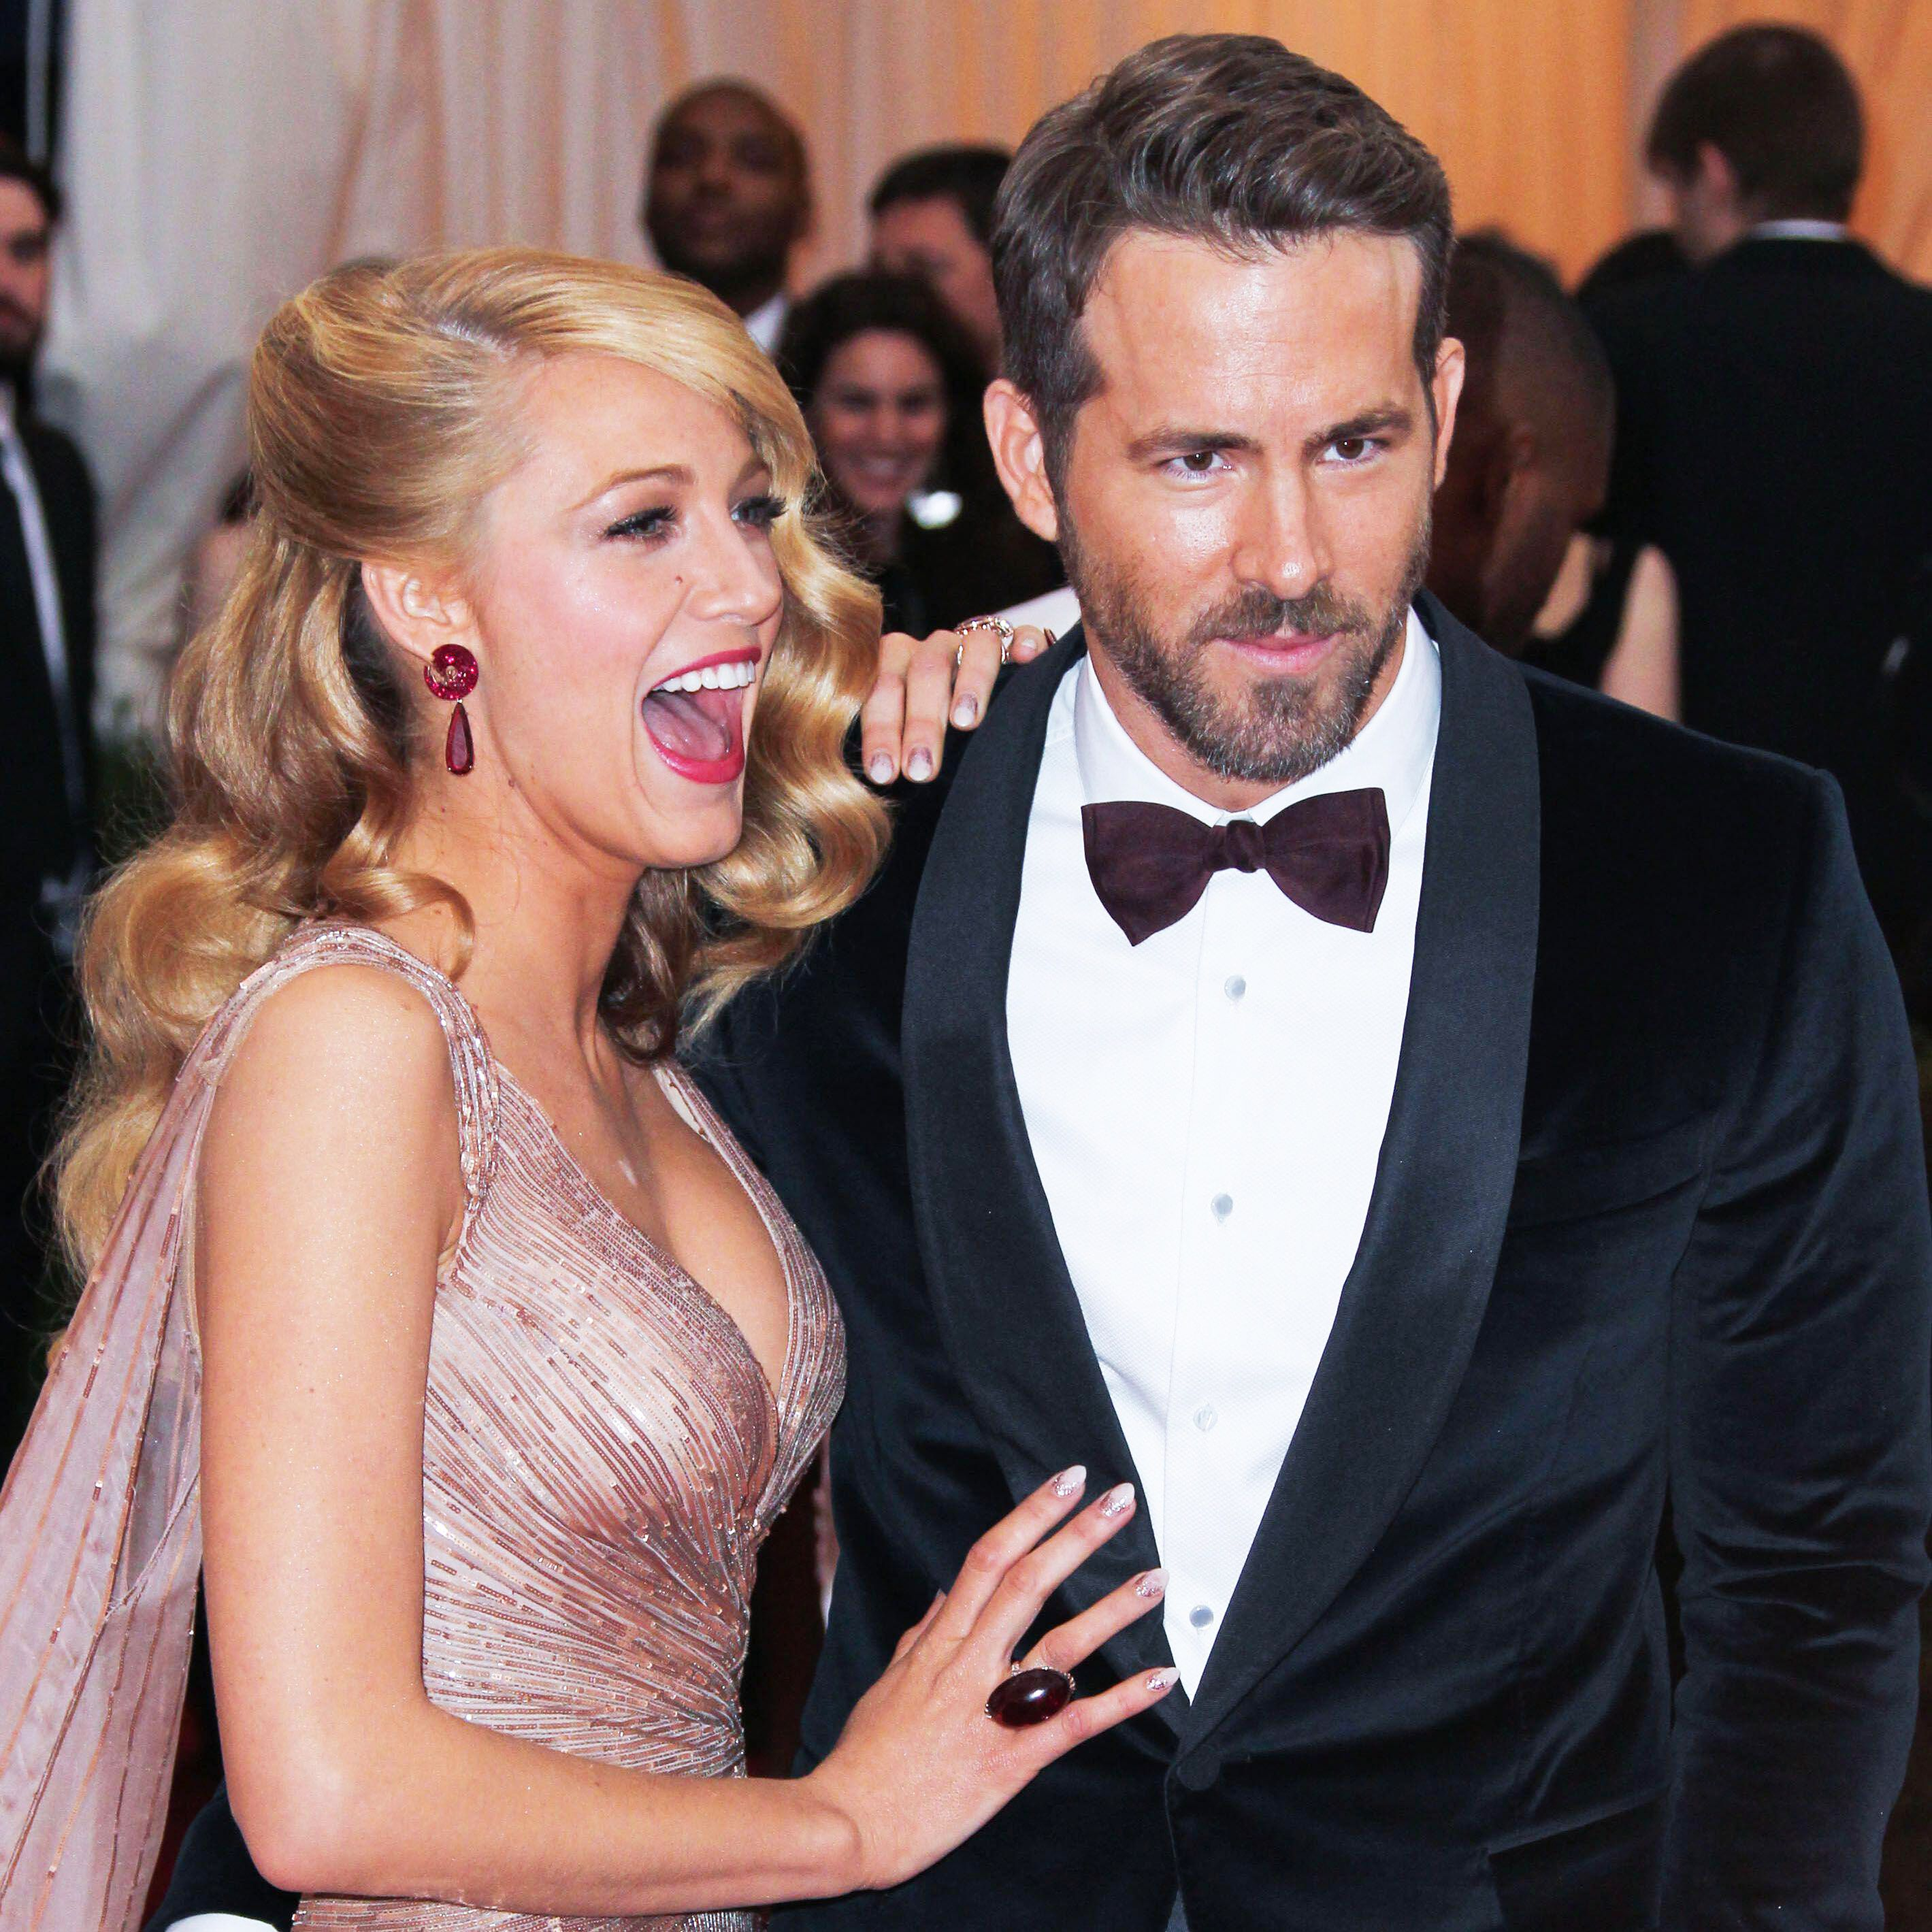 Blake Lively Trolled Ryan Reynolds After He Announced a Break From Making Movies